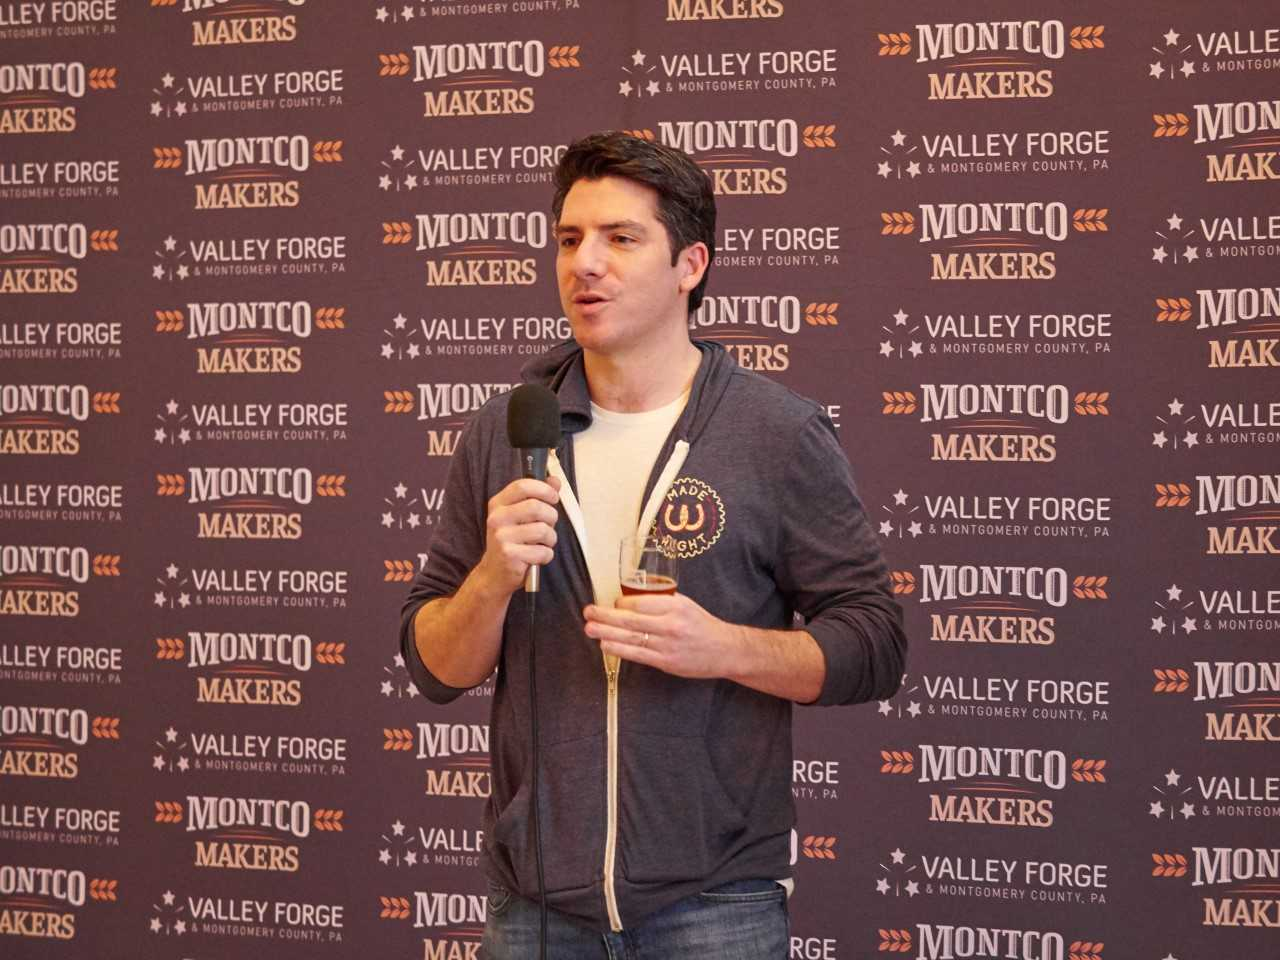 Speakers Series wraps up at Workhorse Brewing Co.